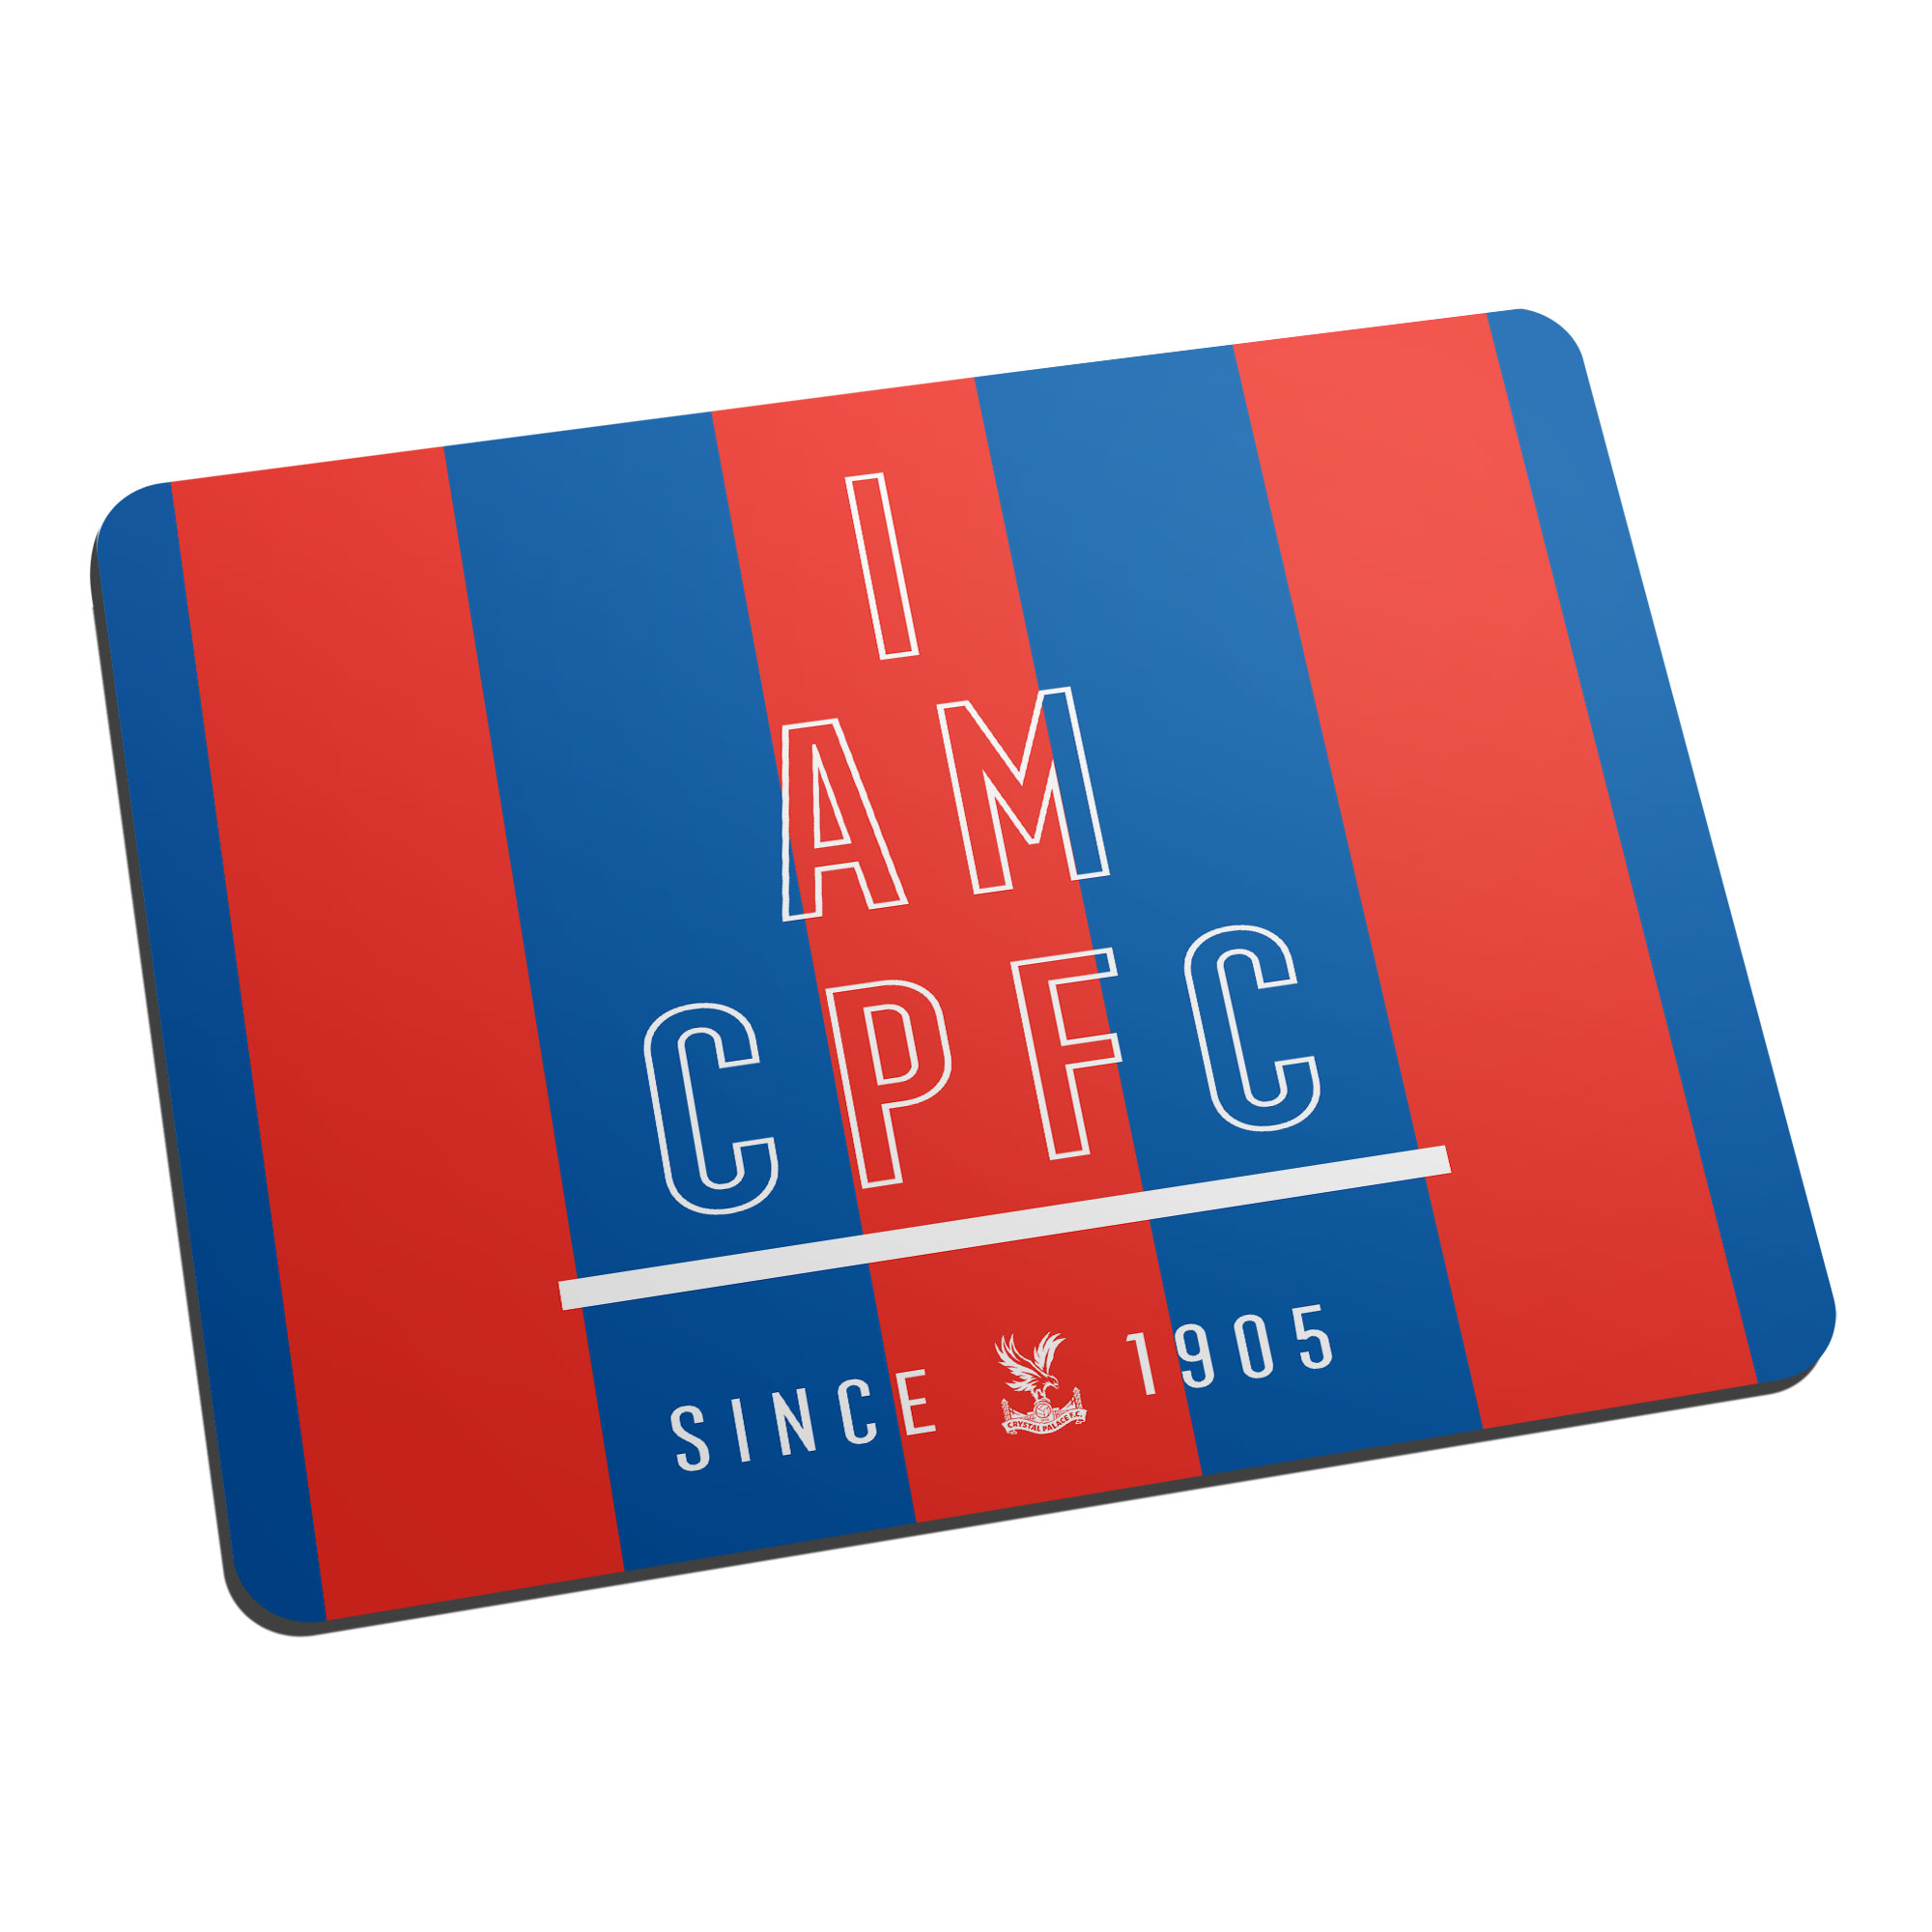 Crystal Palace FC I Am Mouse Mat